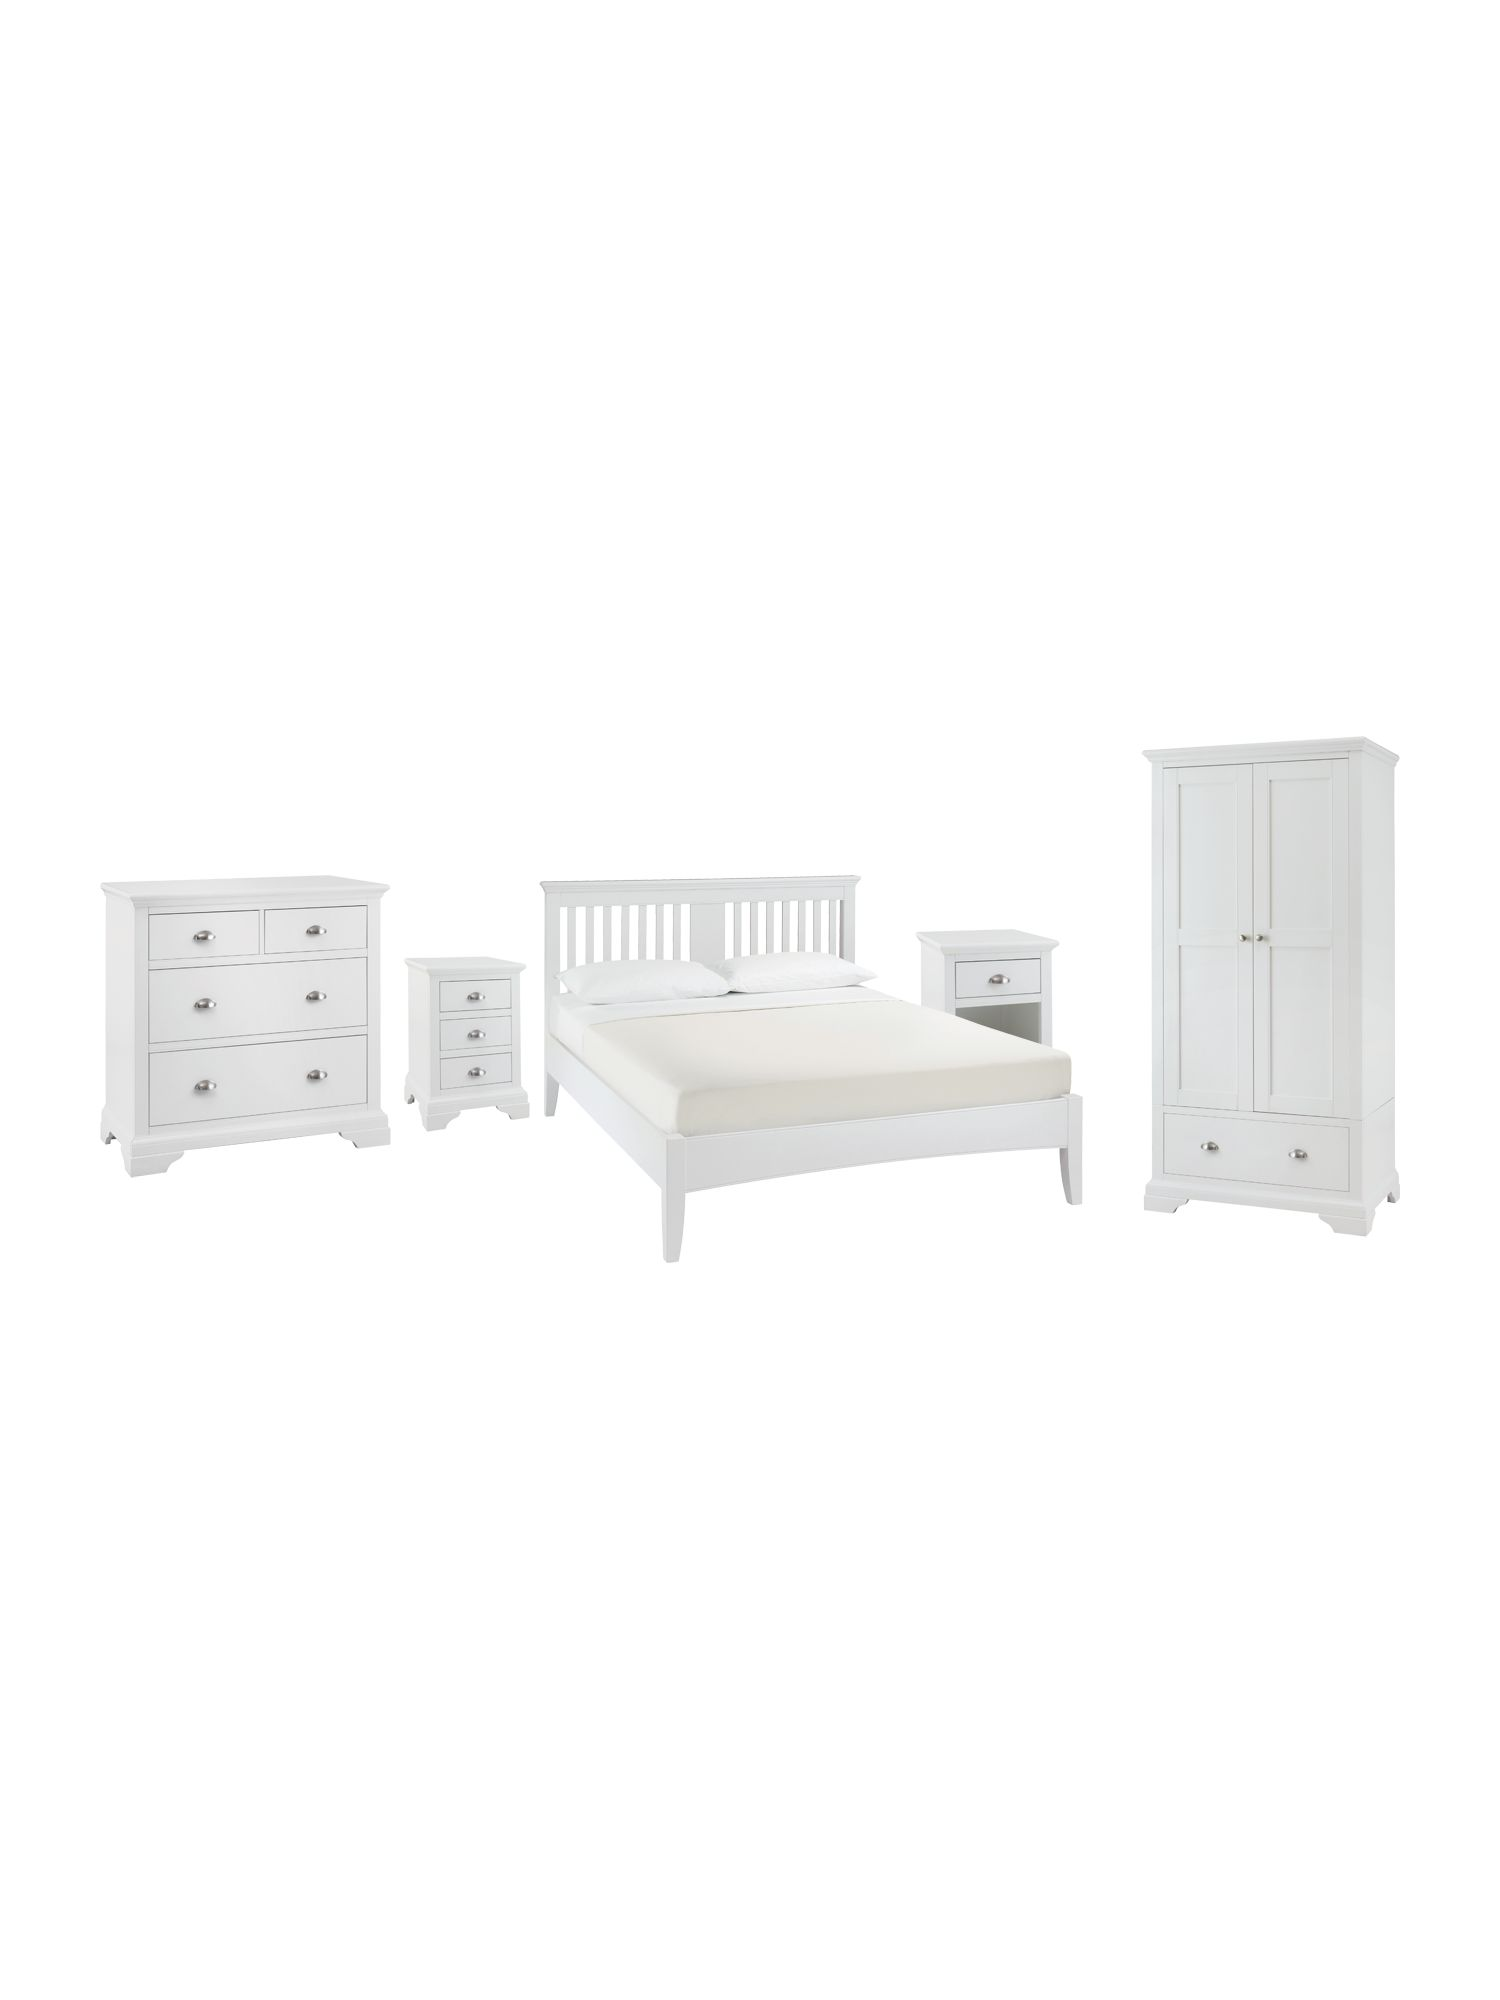 Etienne bedroom range in white